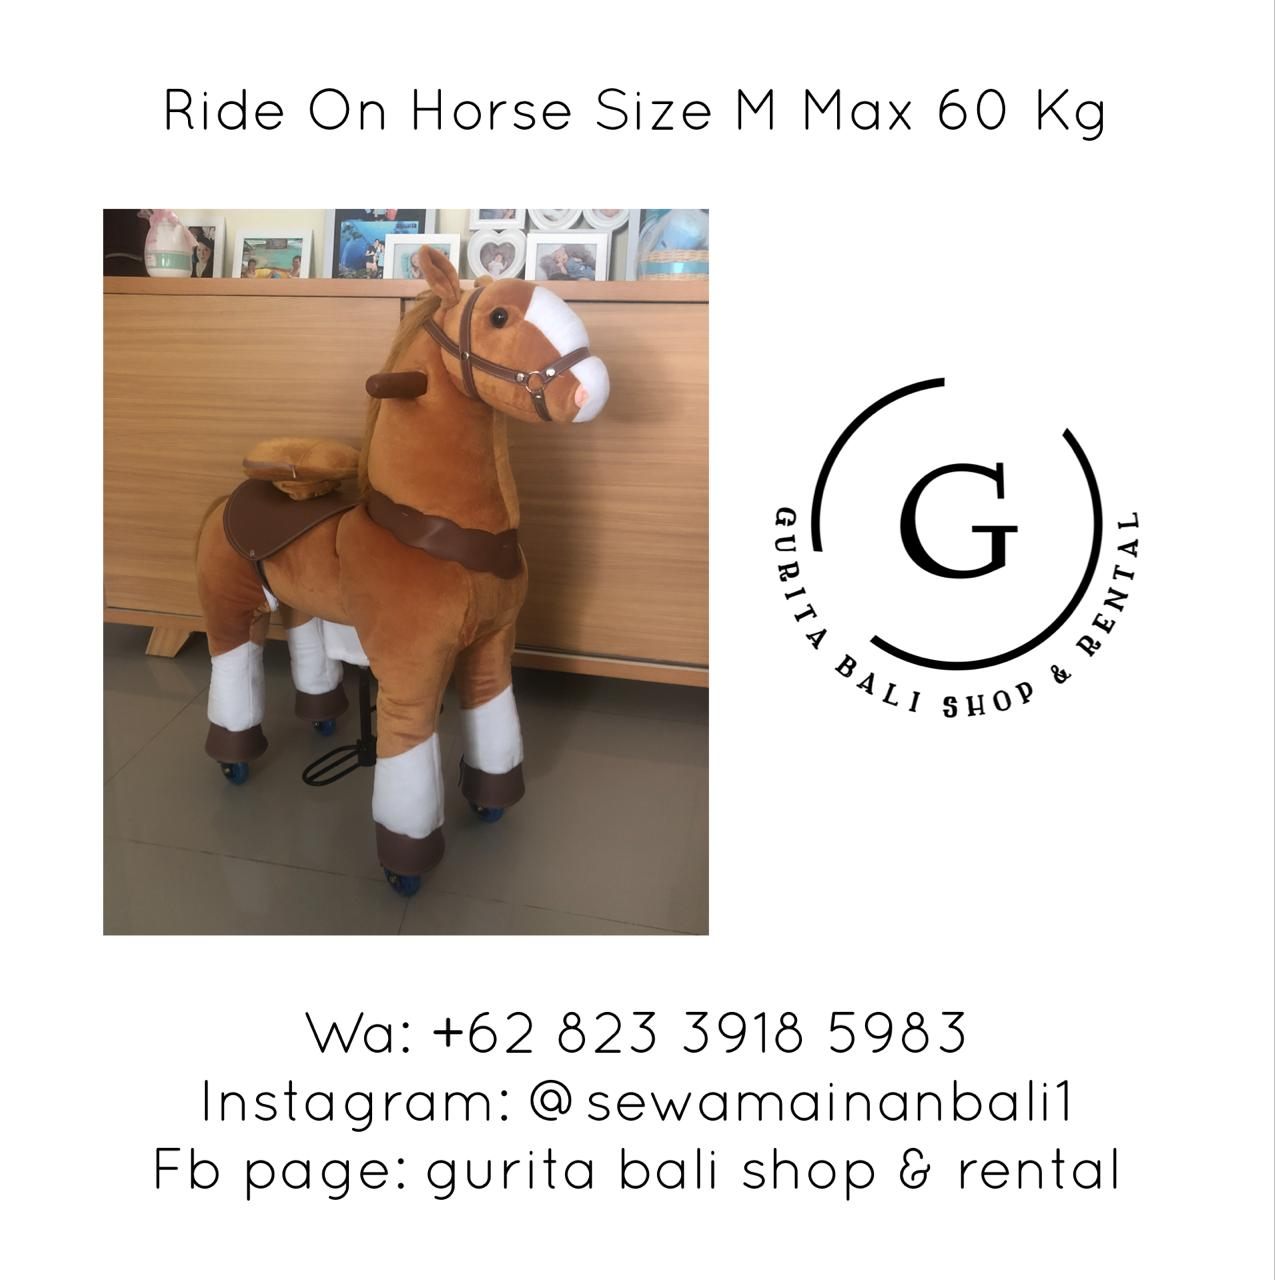 RIDE ON HORSE SIZE M